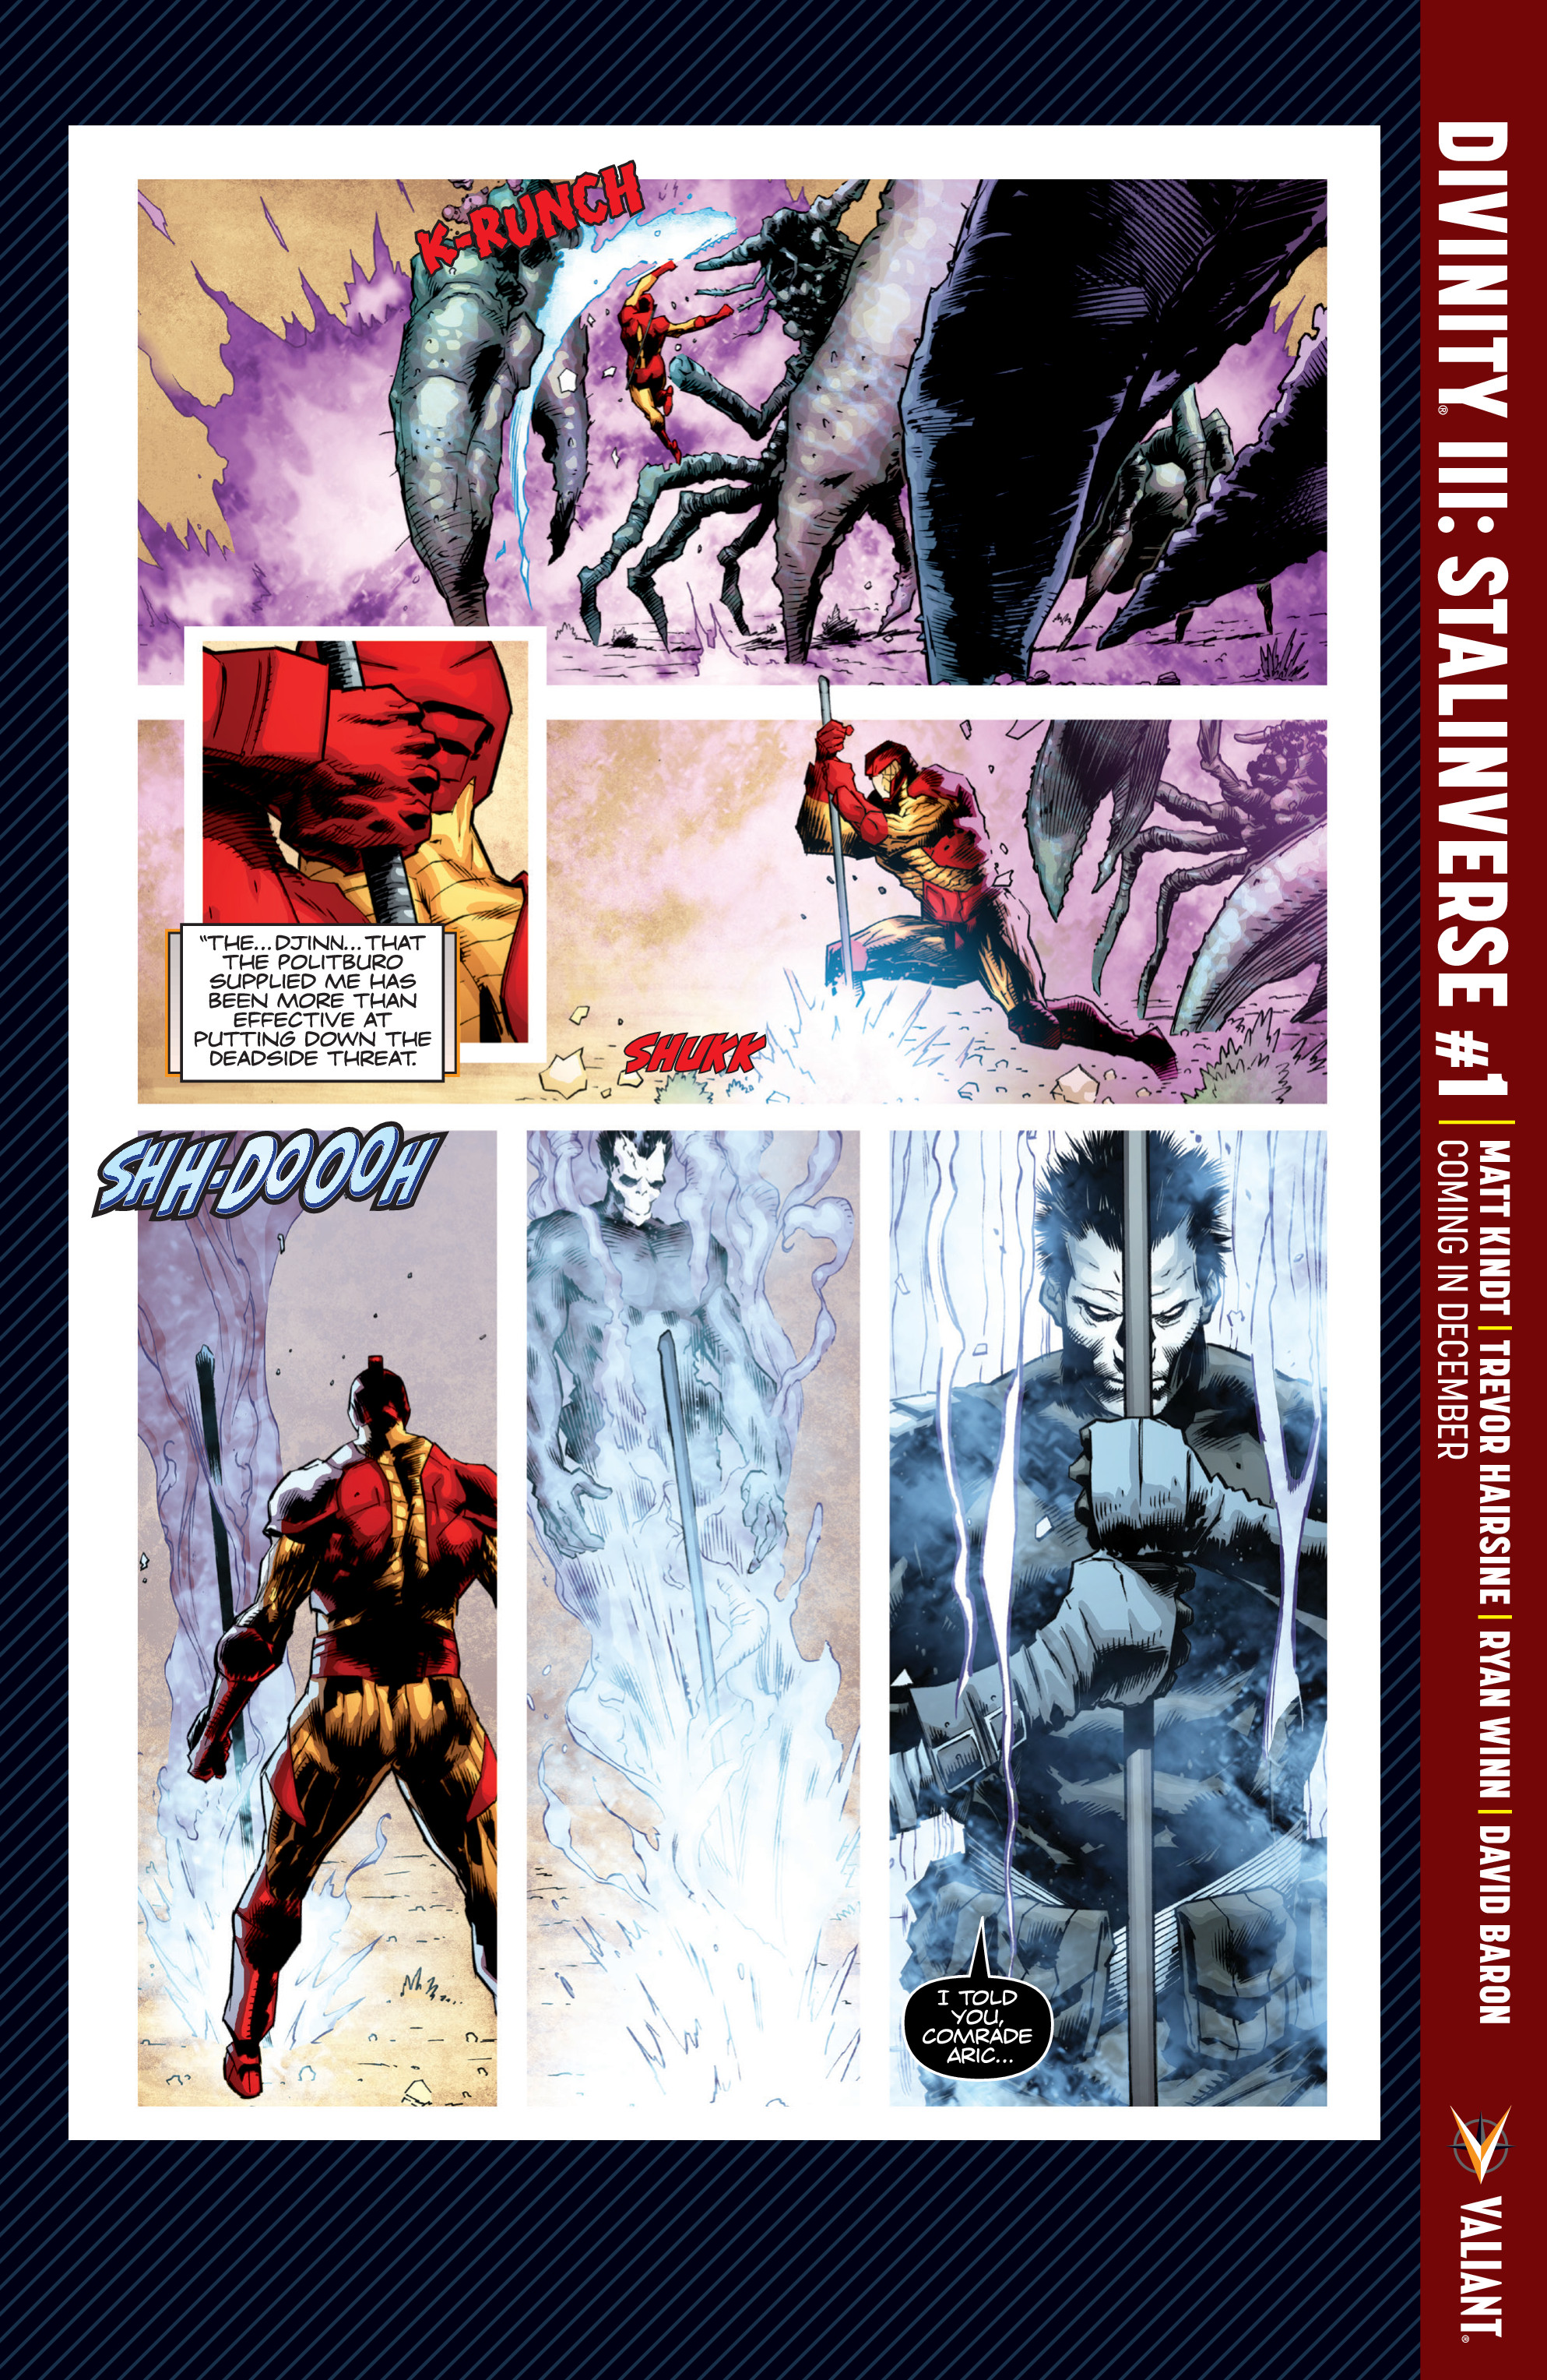 Read online Wrath of the Eternal Warrior comic -  Issue #14 - 26